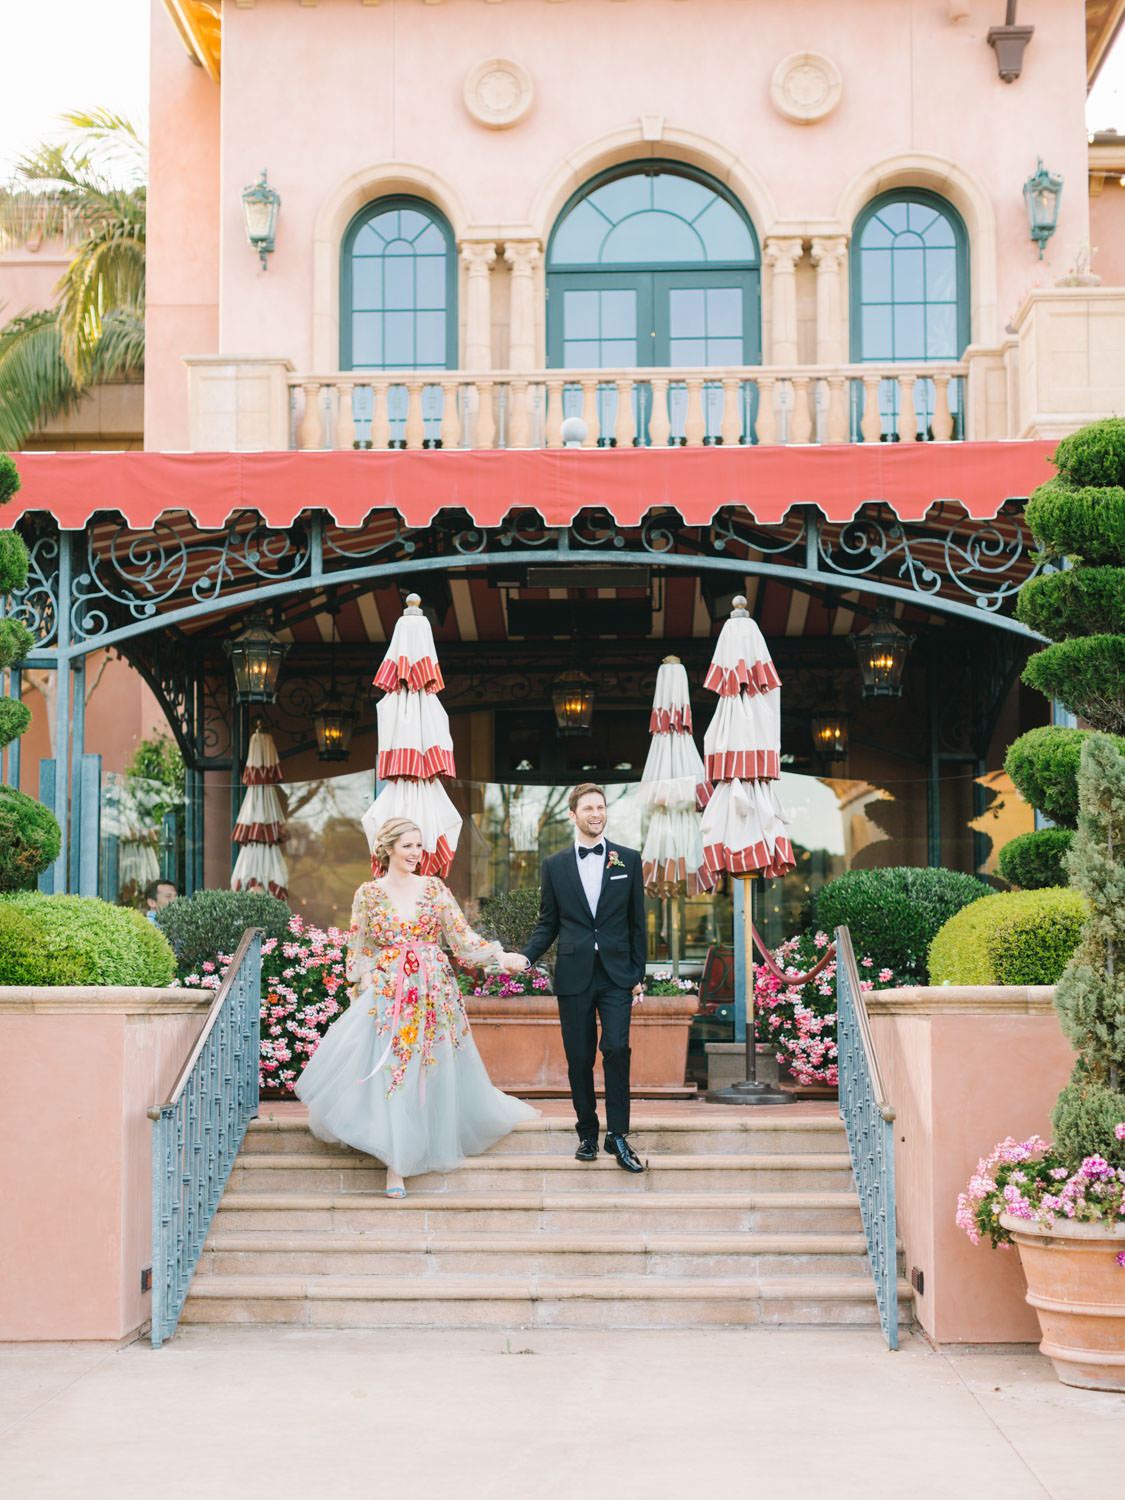 Bride and groom grand entrance into reception. Bride wearing colorful Marchesa wedding gown with blue, pink, yellow, green, and orange floral appliques. A Wedding Photographer's Fairmont Grand Del Mar Wedding